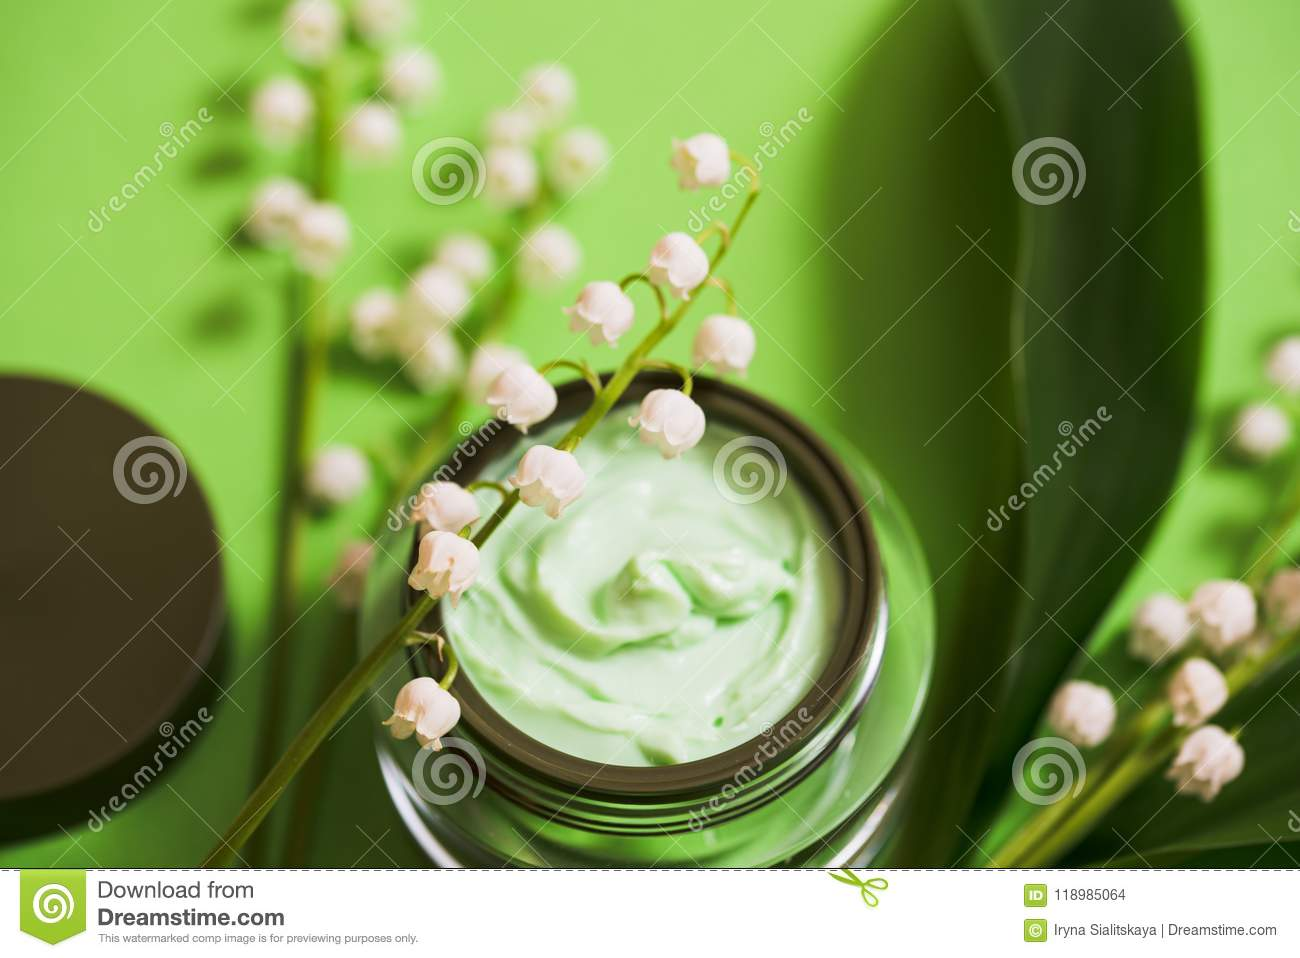 cosmetic cream and lily of the valley flowers on a green background.